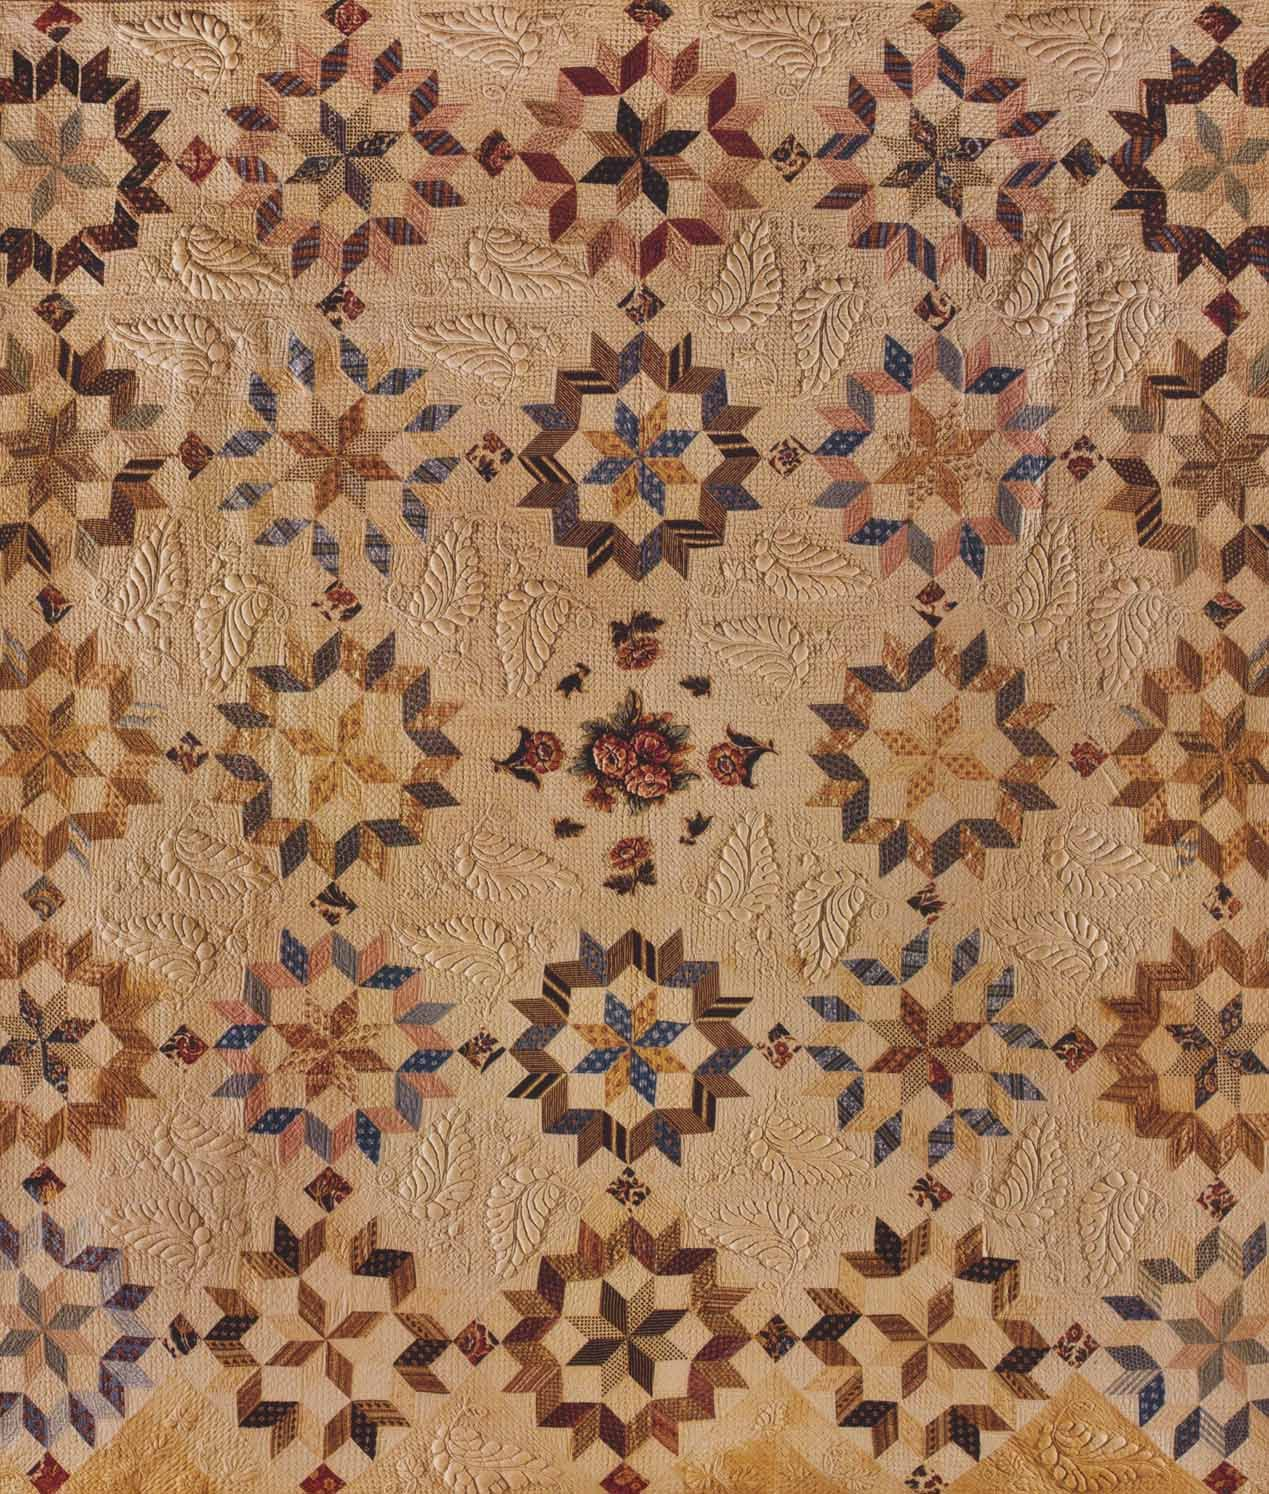 Carpenter's Wheel Quilt, 1835-1845. Pennsylvania. QUILTS Masterworks from the American Folk Art Museum. Great trapunto!